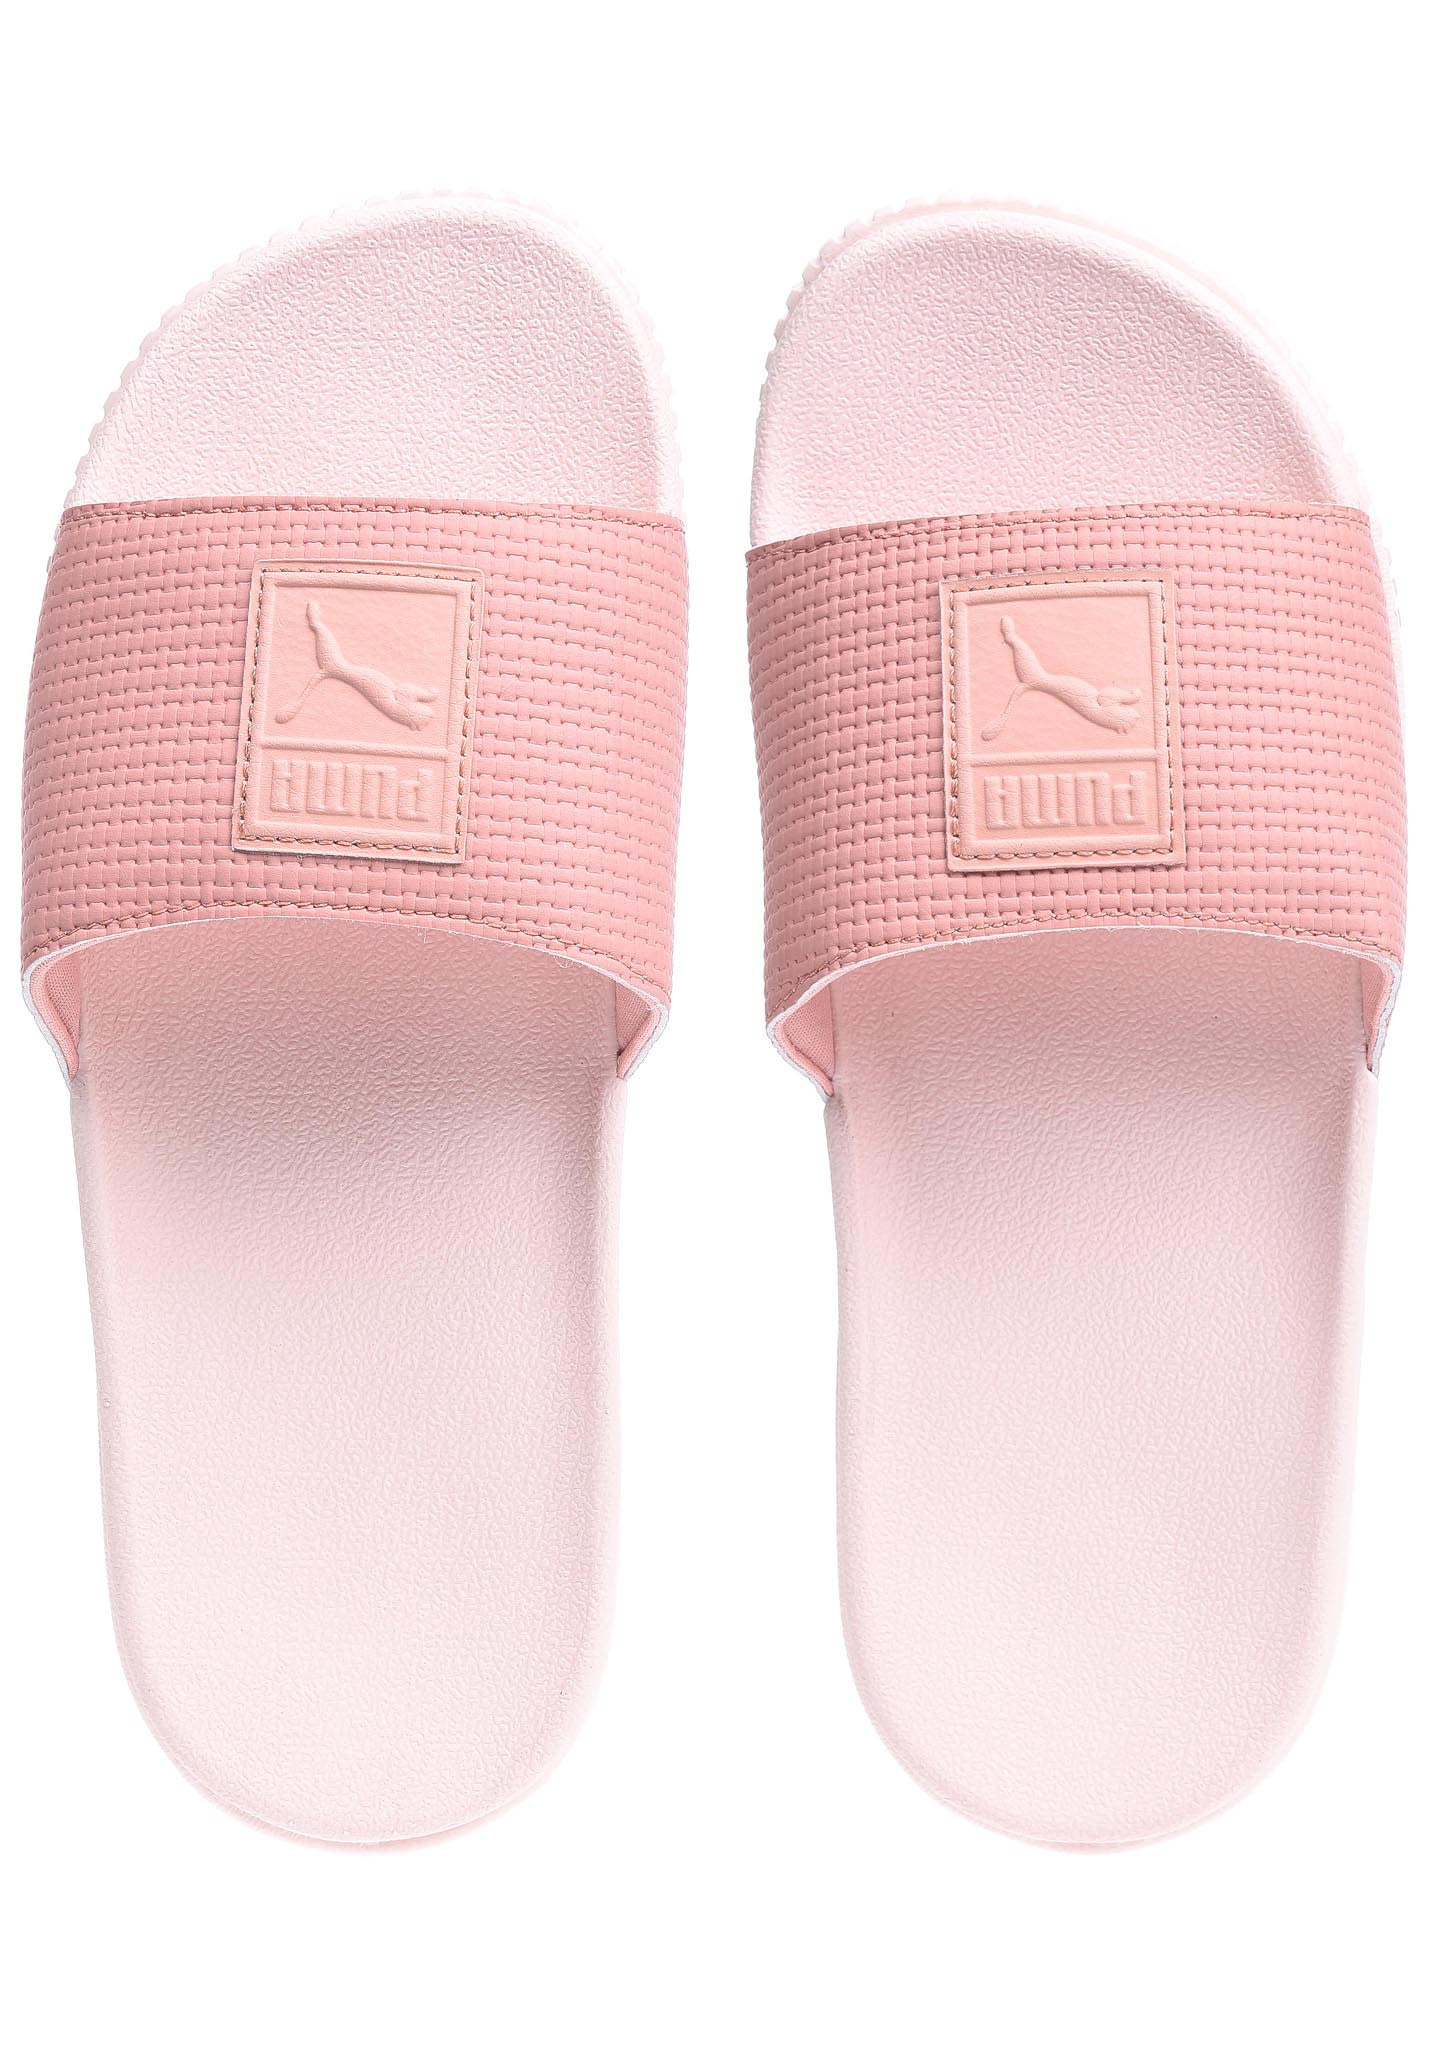 83321b41f34 Puma Platform Slide EP - Sandals for Women - Pink - Planet Sports